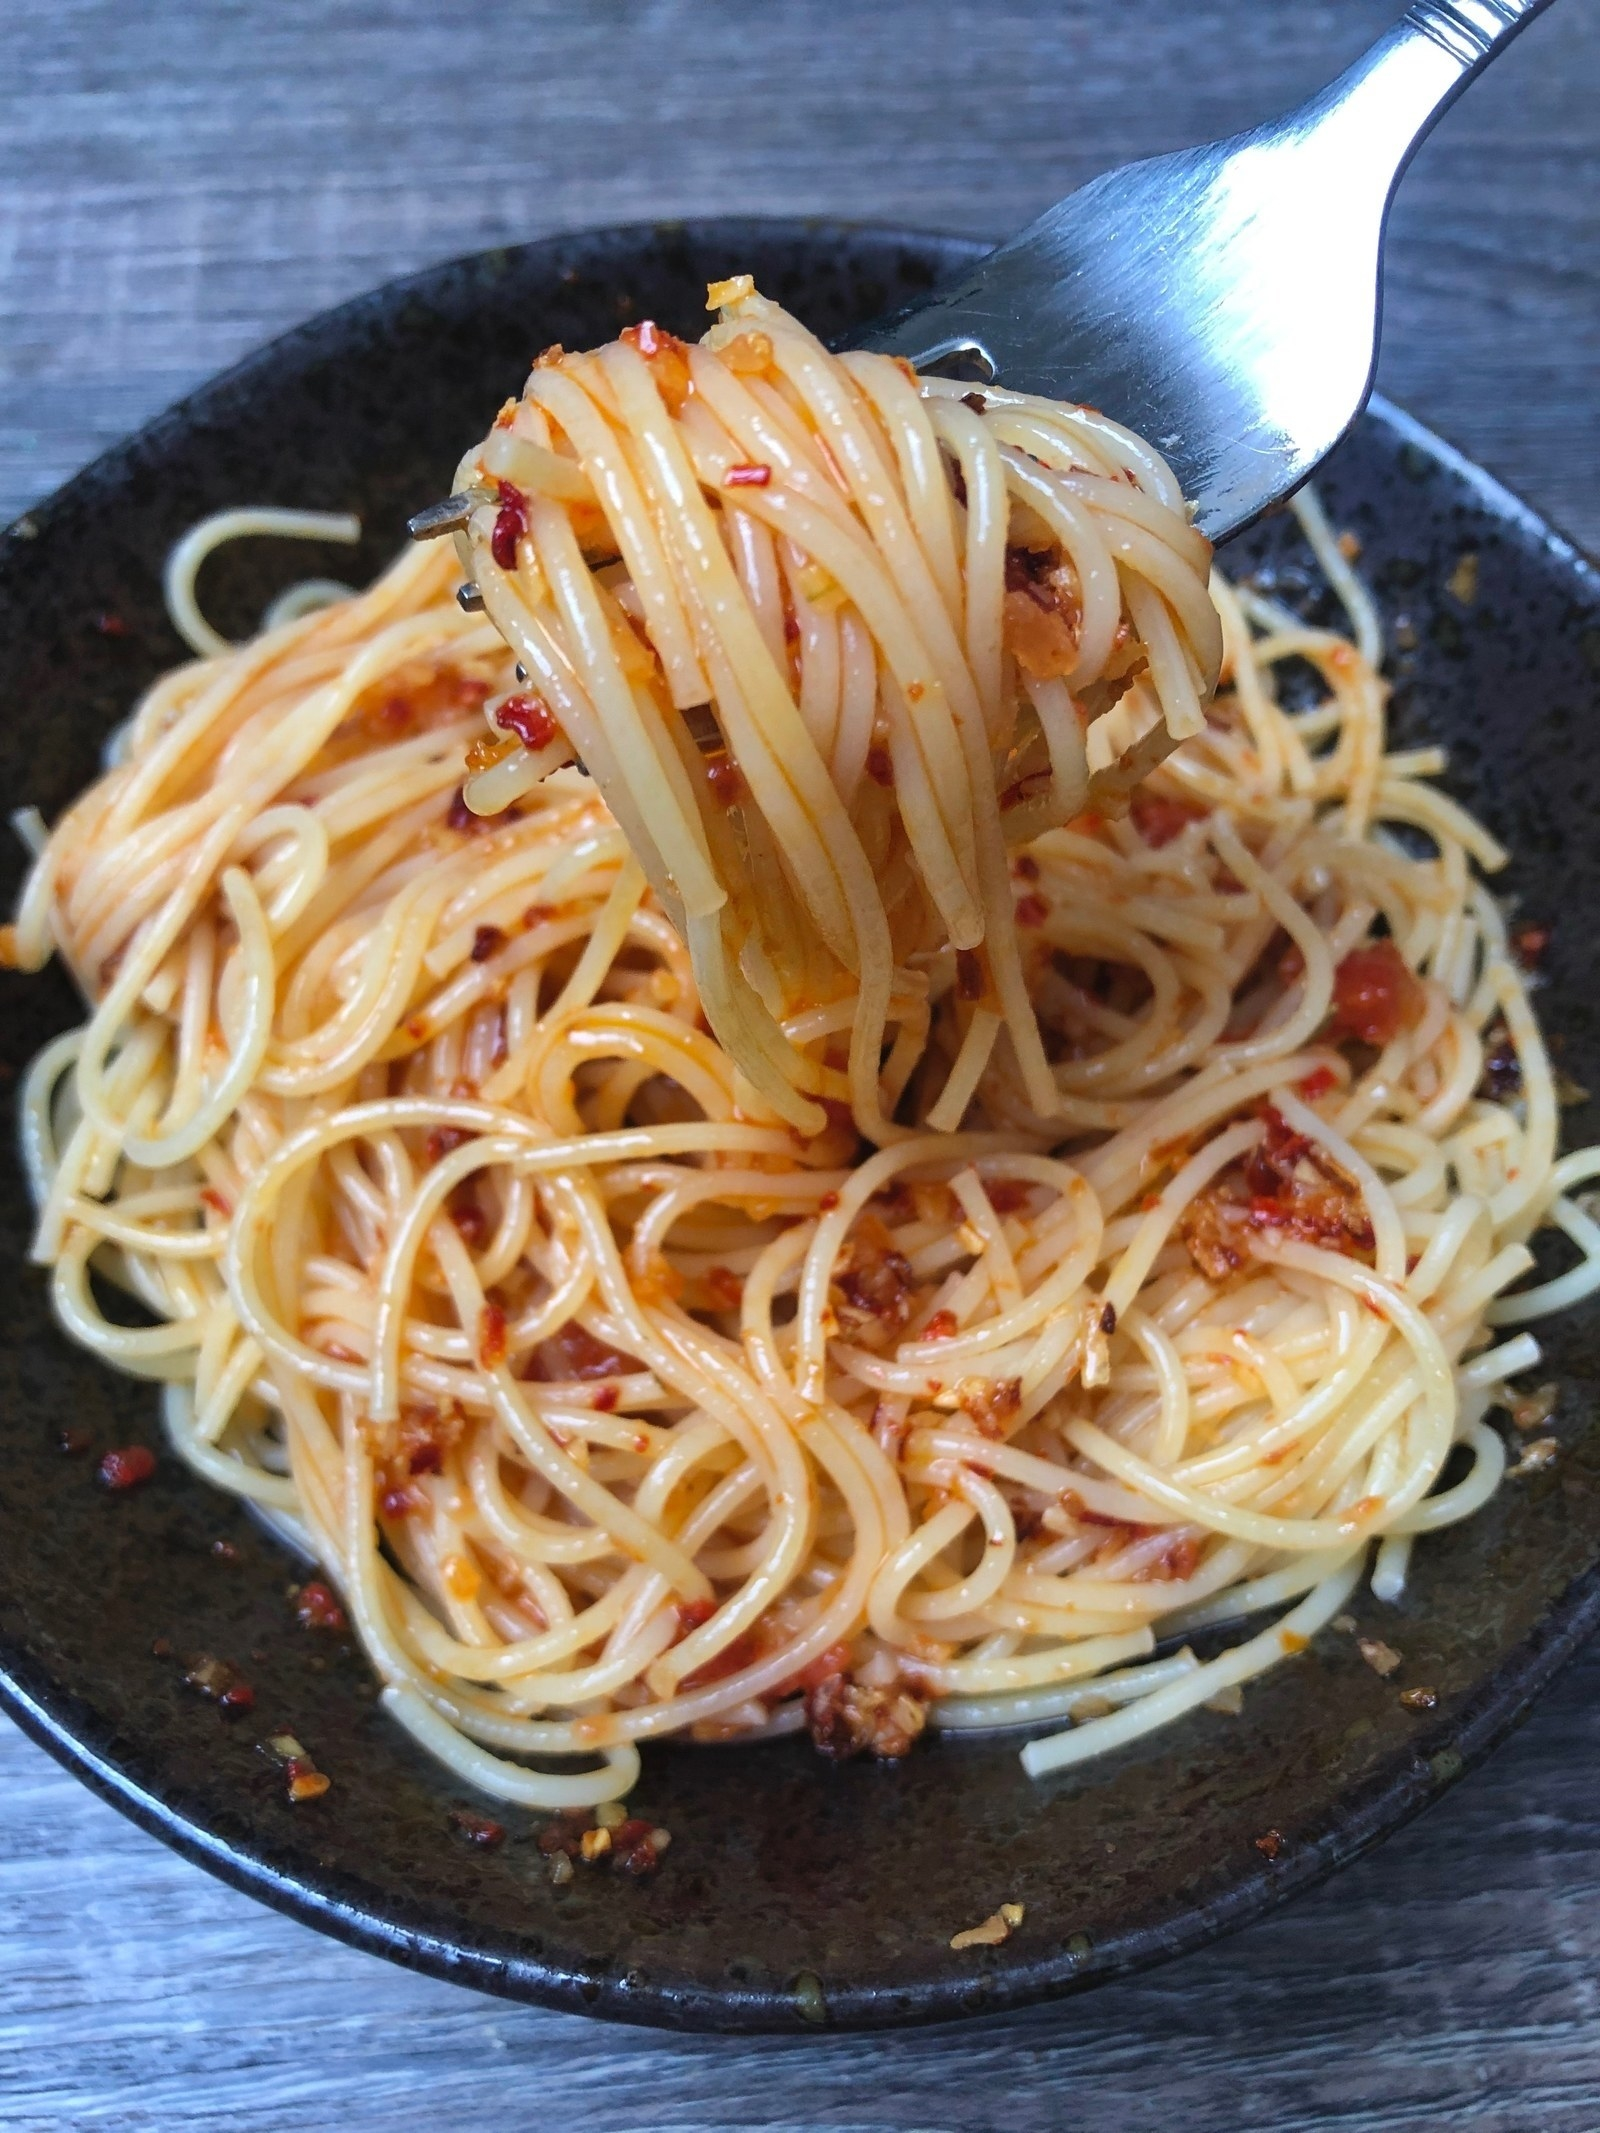 A bowl of spaghetti with chili onion crunch condiment.